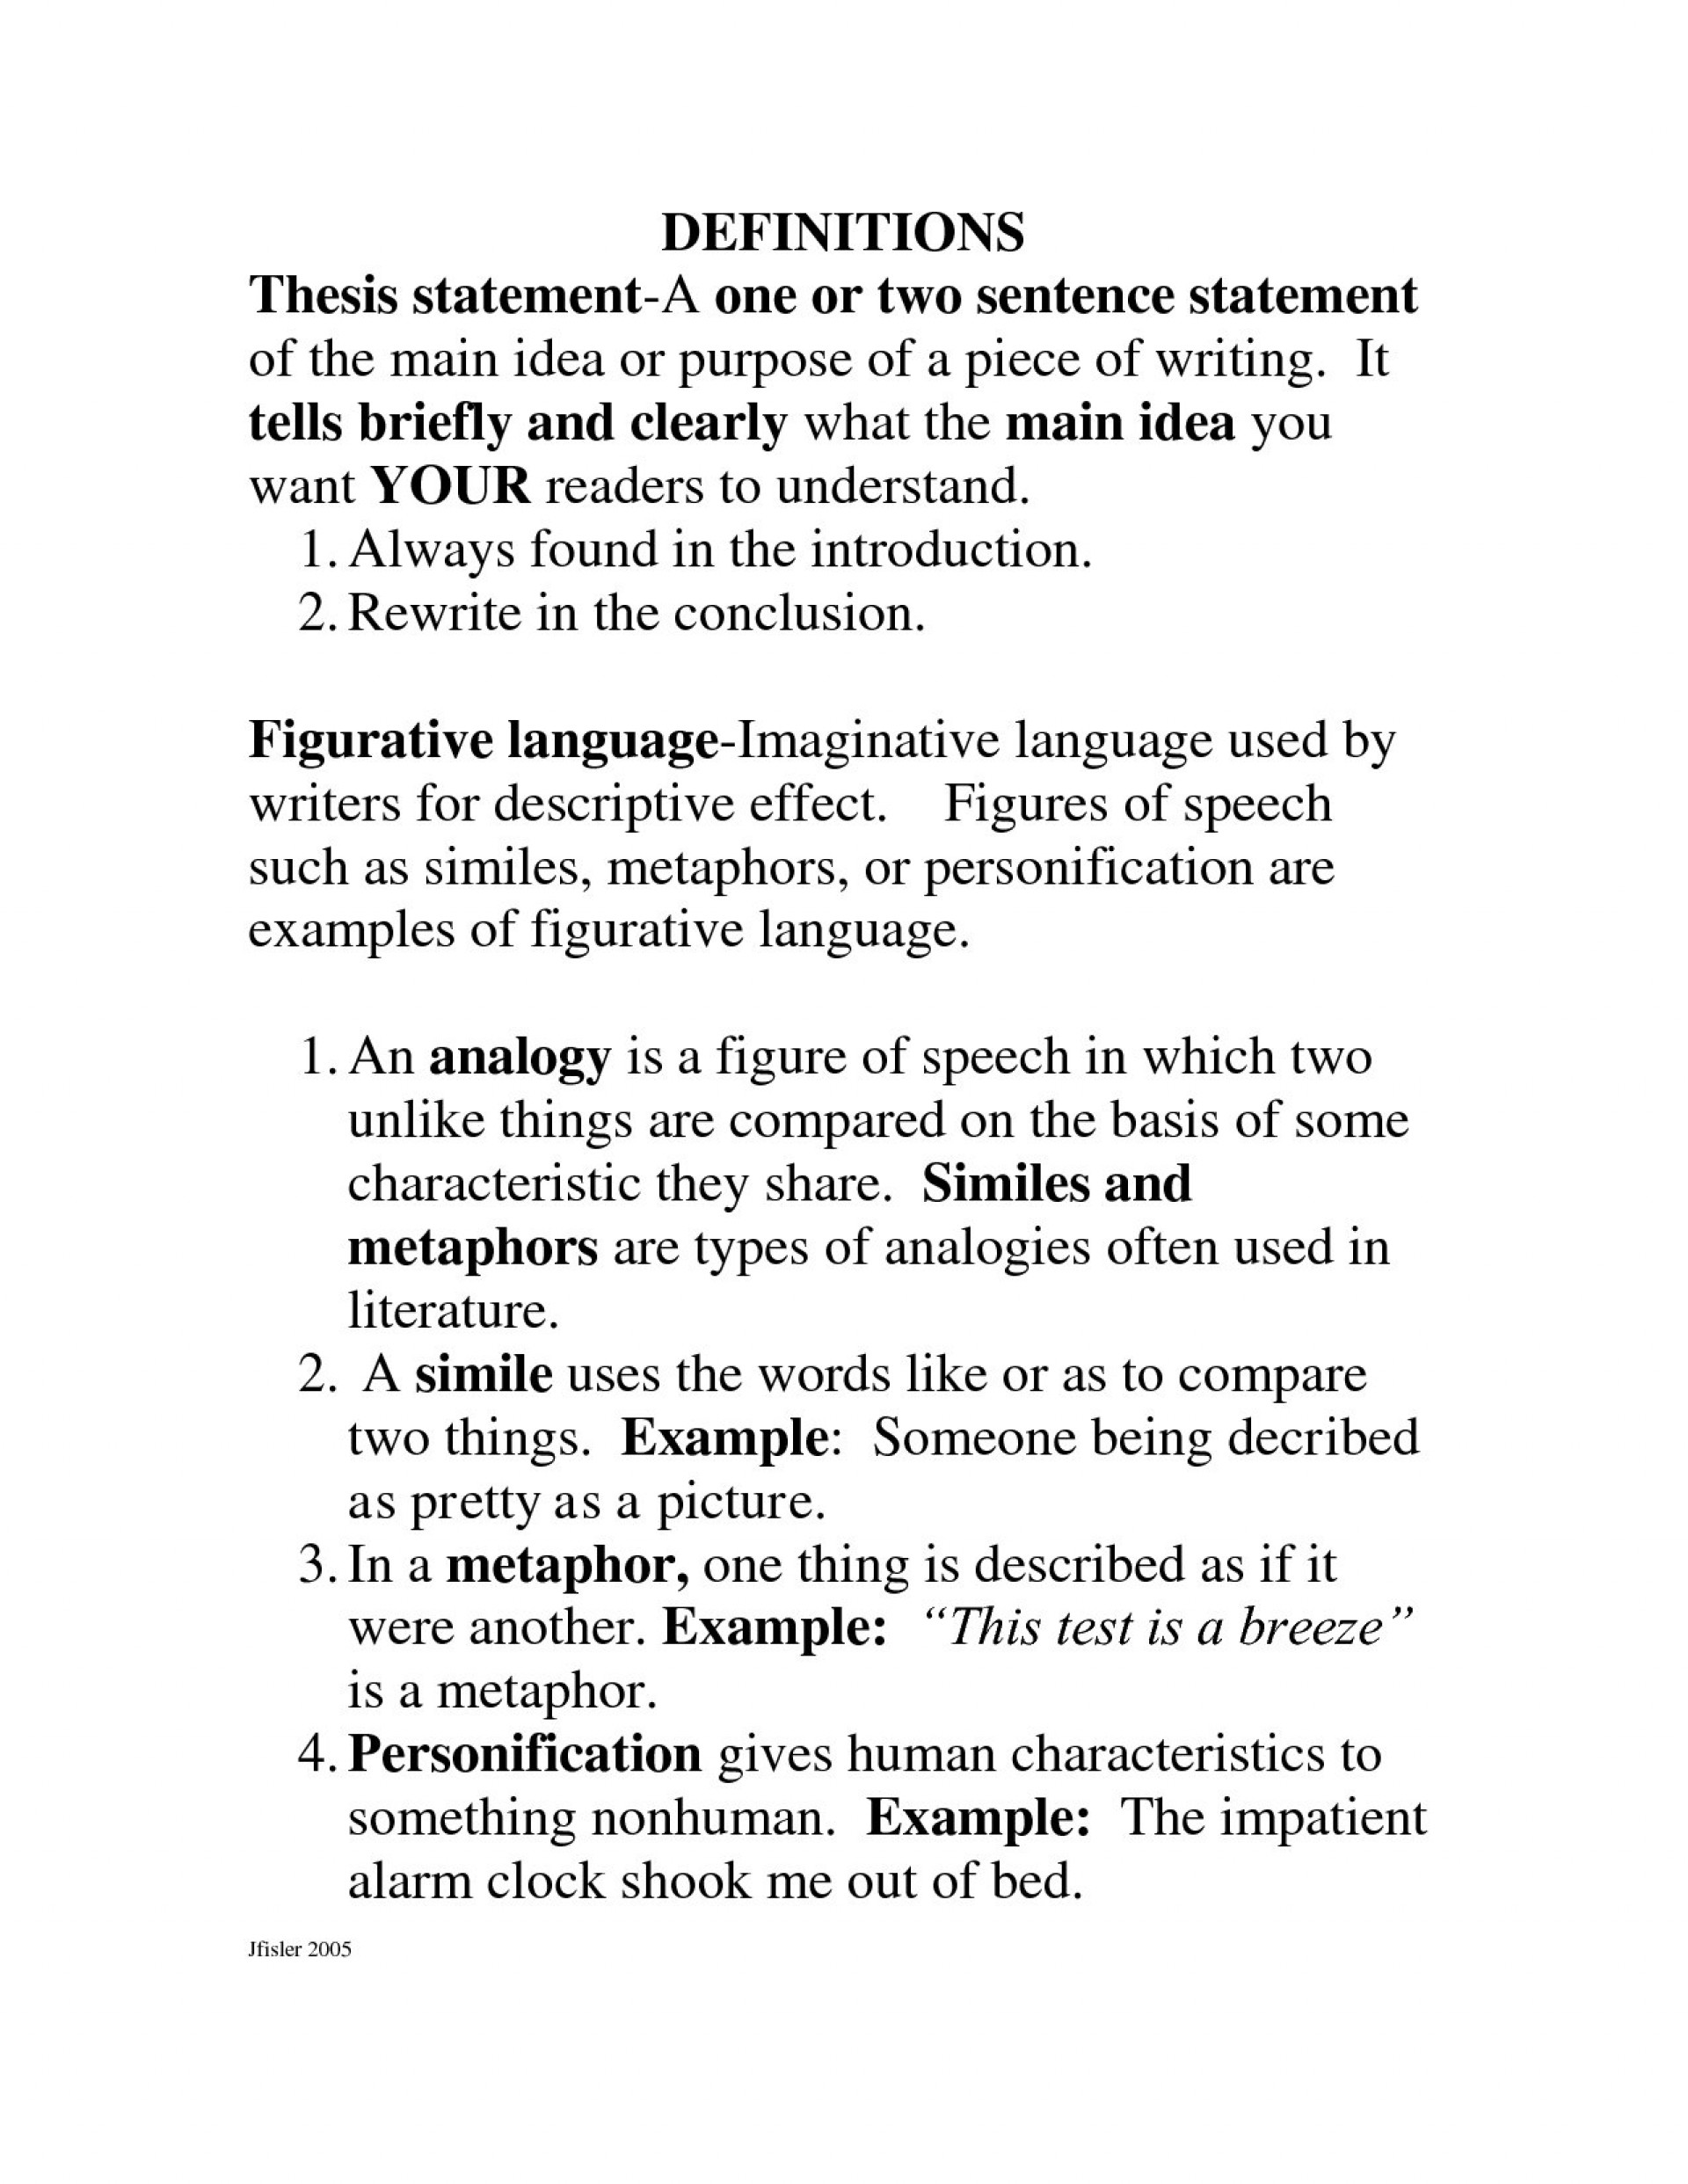 research paper define and thesis statement descriptive